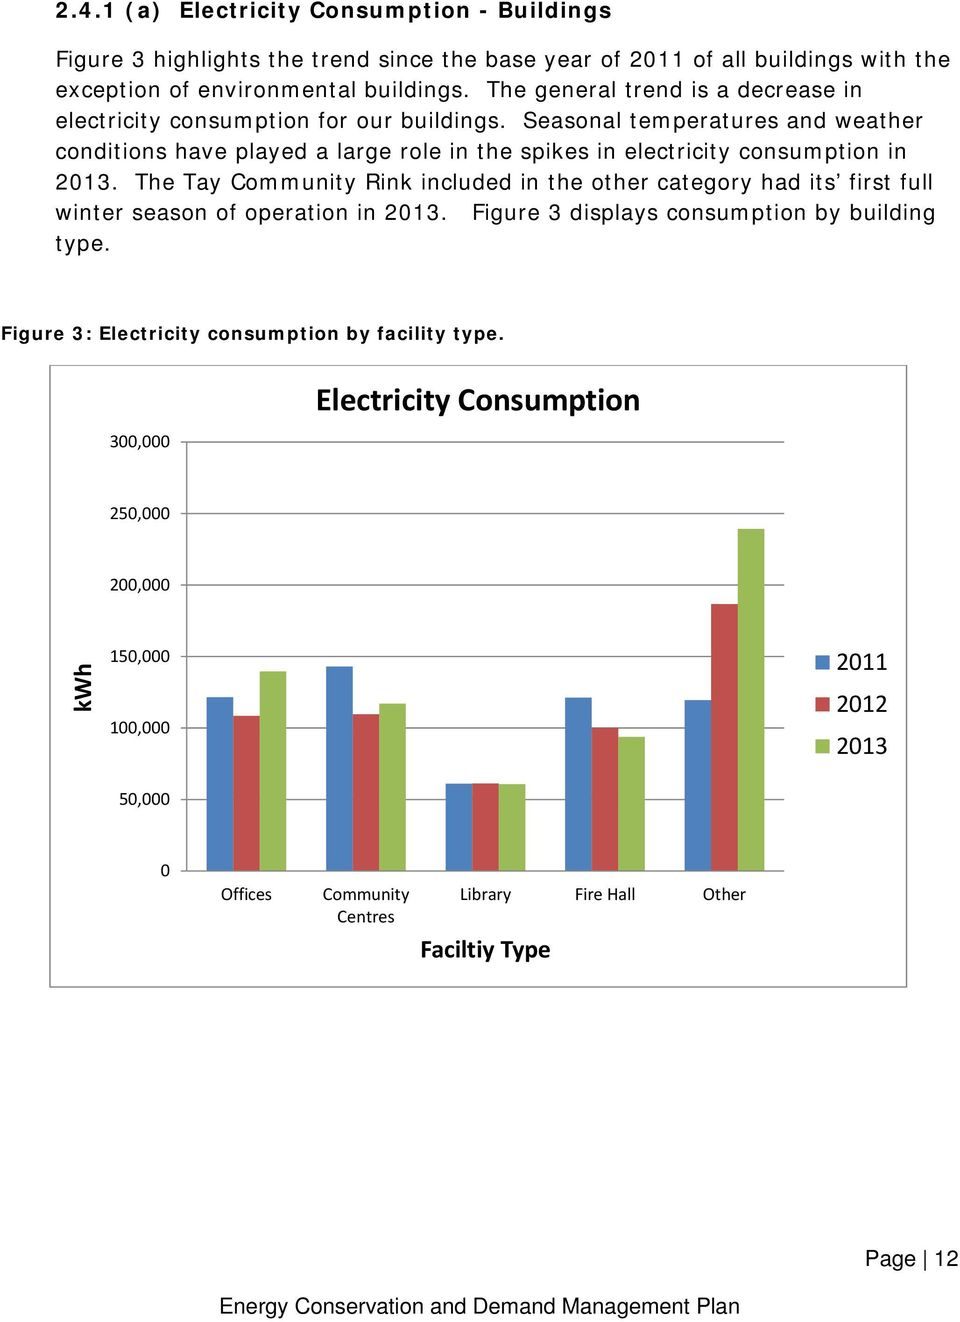 Seasonal temperatures and weather conditions have played a large role in the spikes in electricity consumption in 2013.